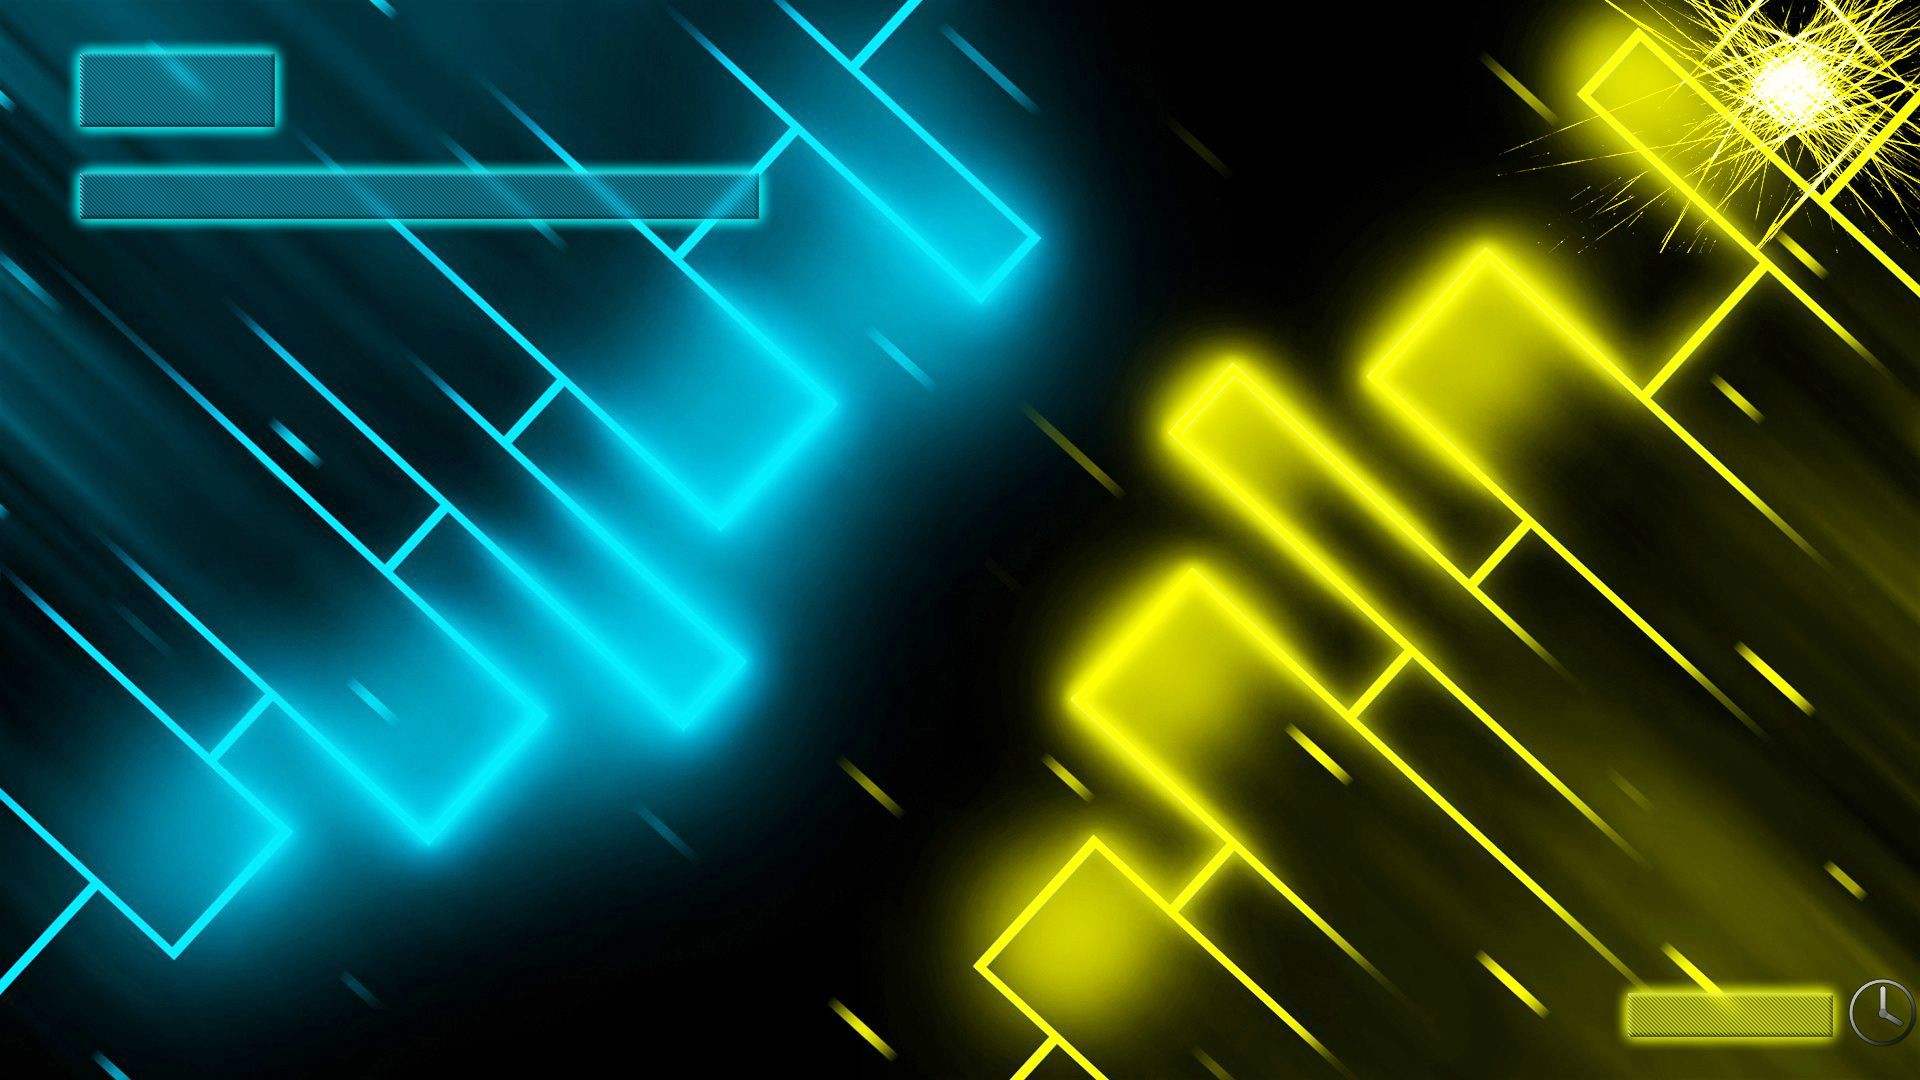 1920x1080 ... Cool Xbox Backgrounds - Wallpapers Browse ...